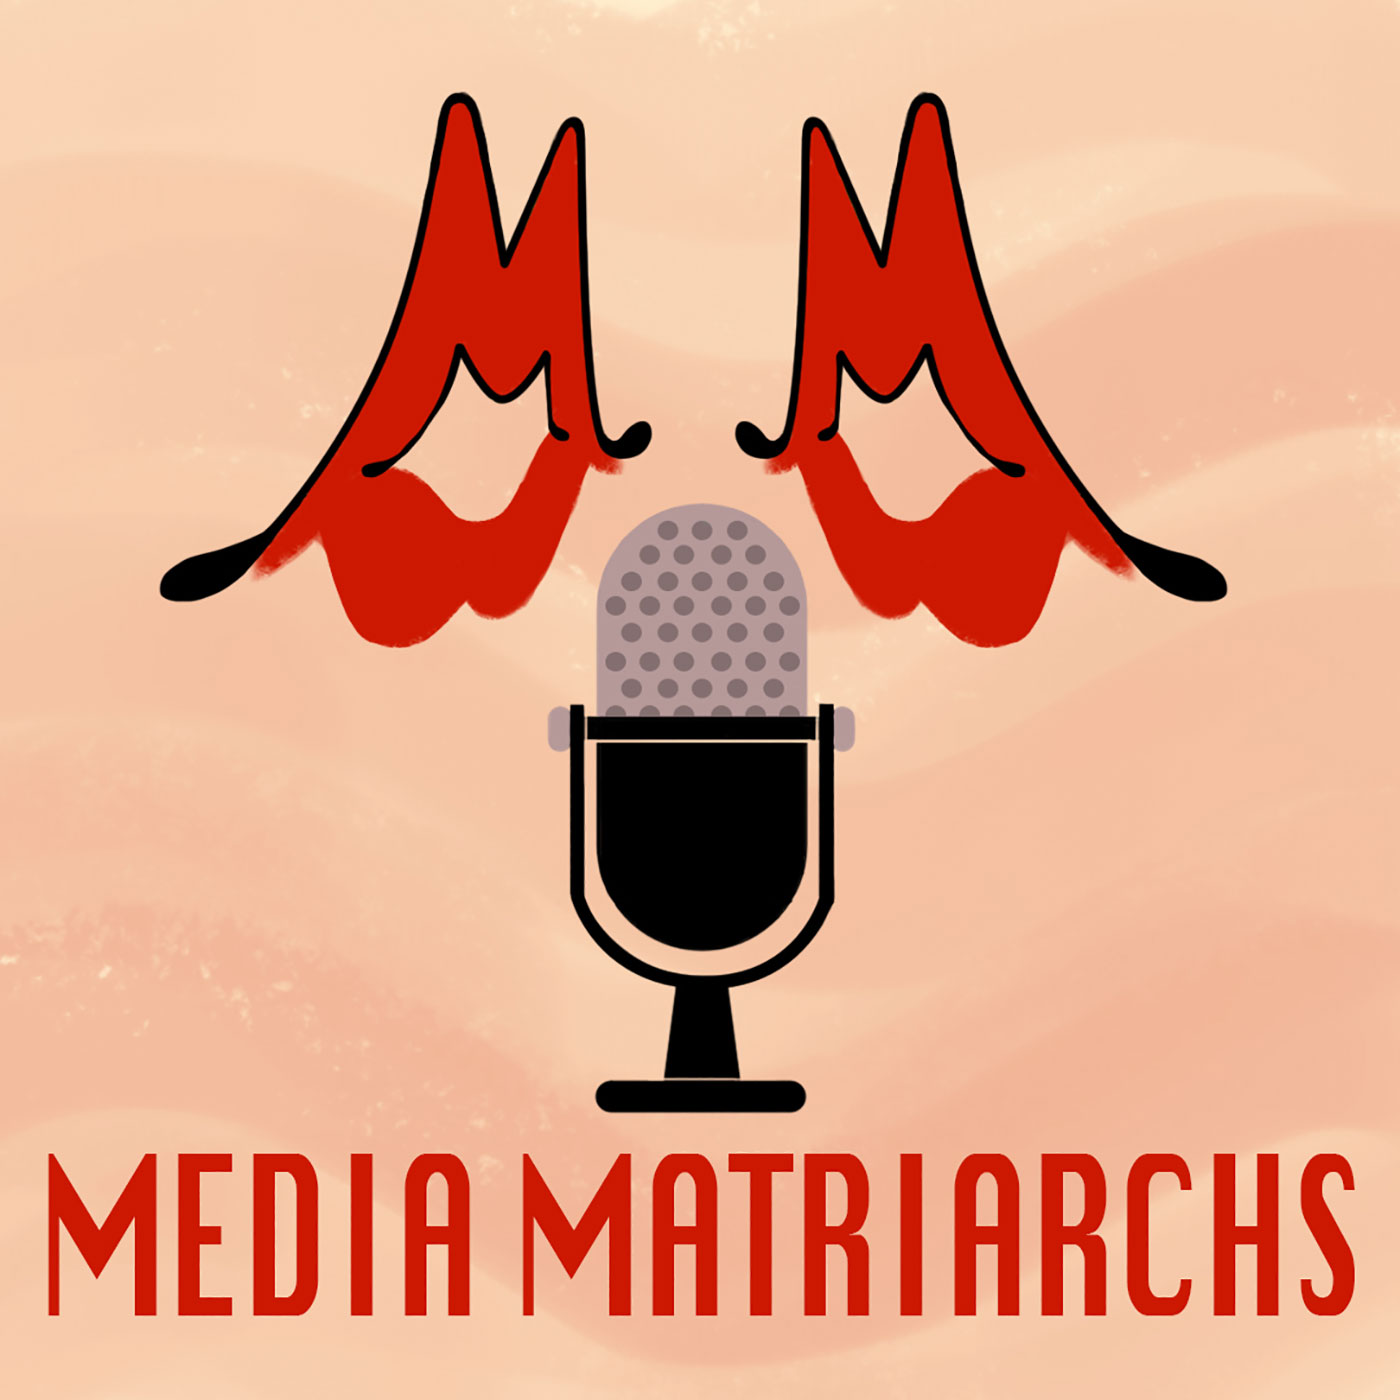 Media Matriarchs